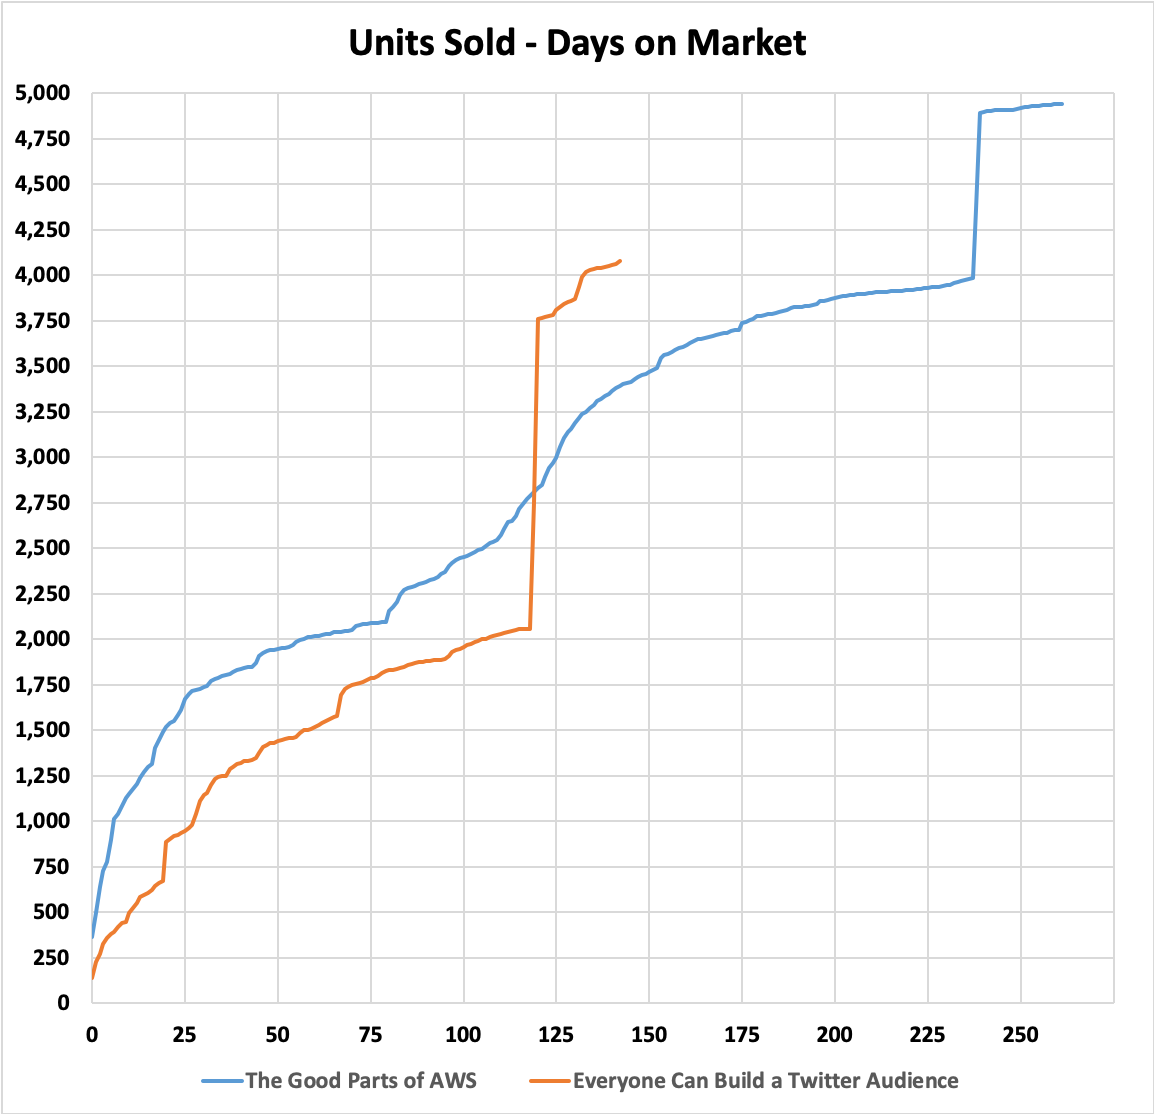 Units Sold - Days on Market